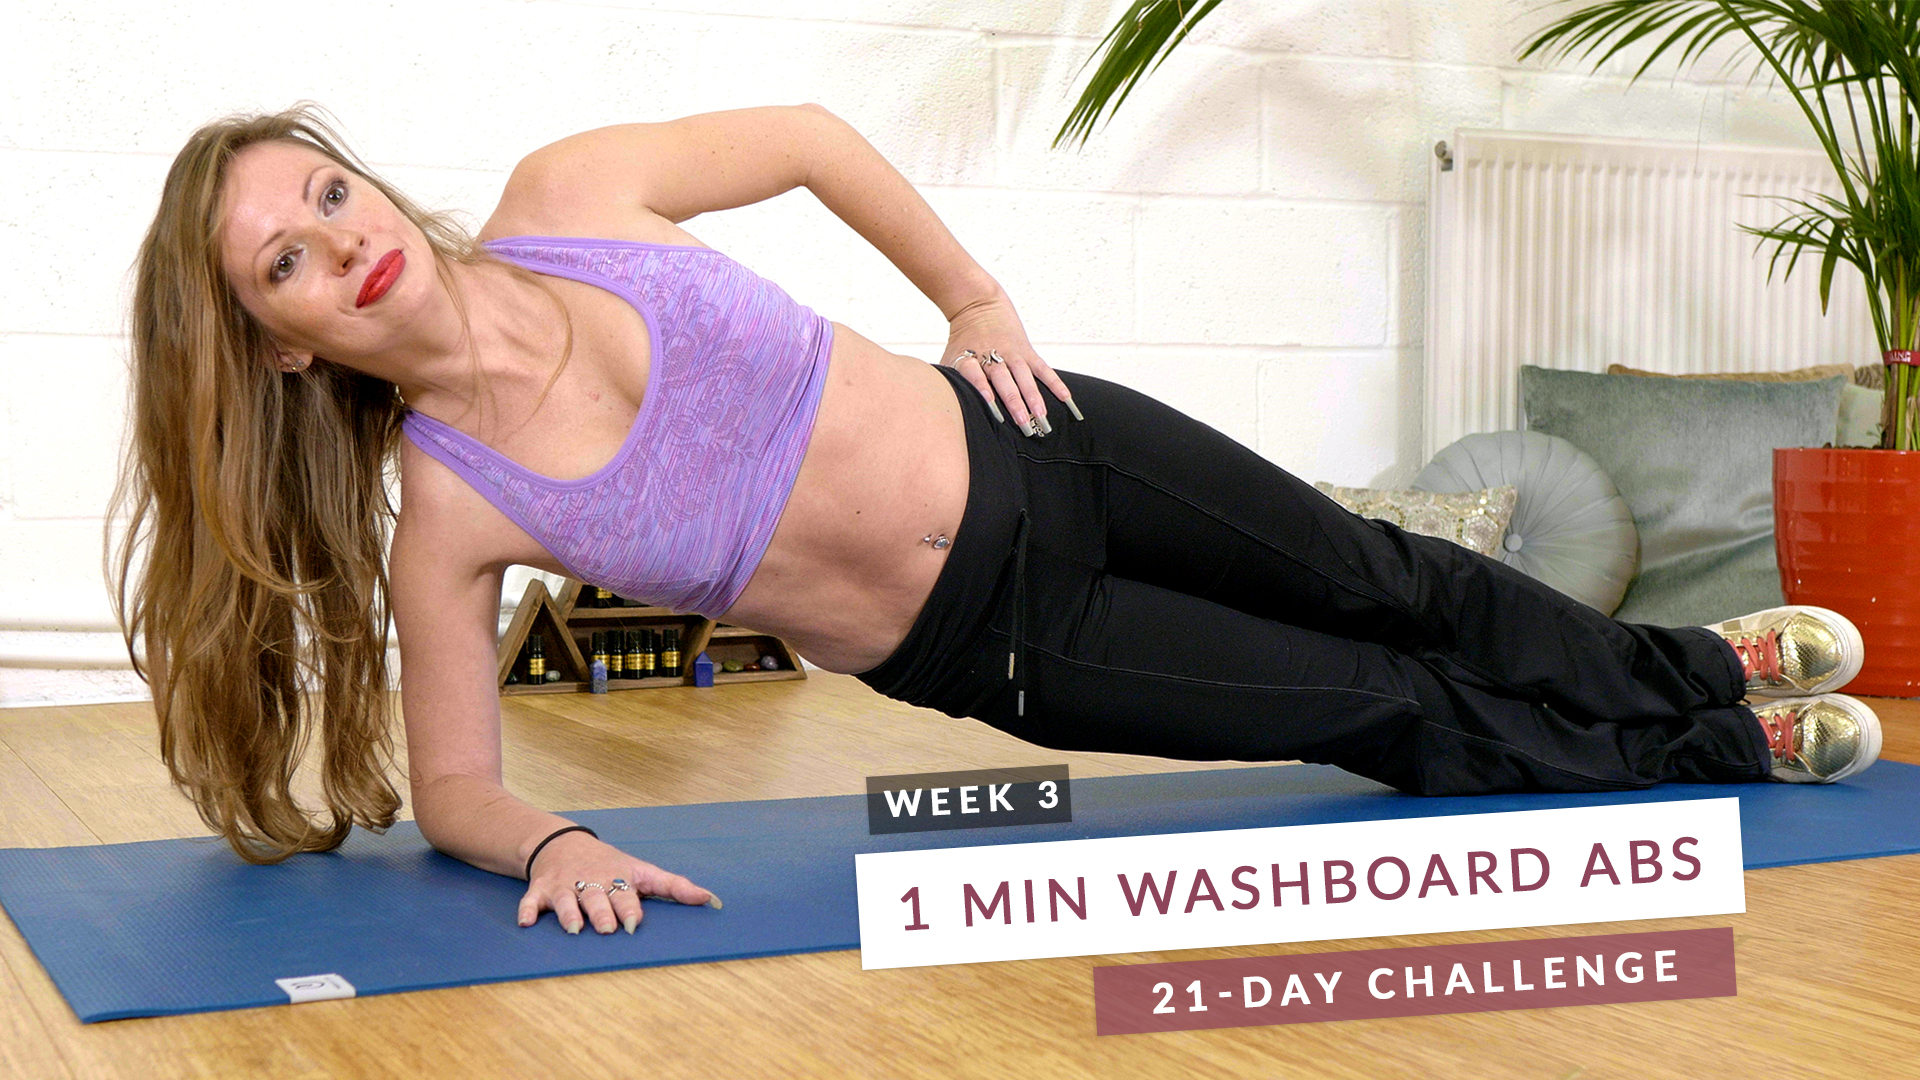 1 Min Washboard ABS | 21 Day Challenge | Week 3 at Little Egypt Studio